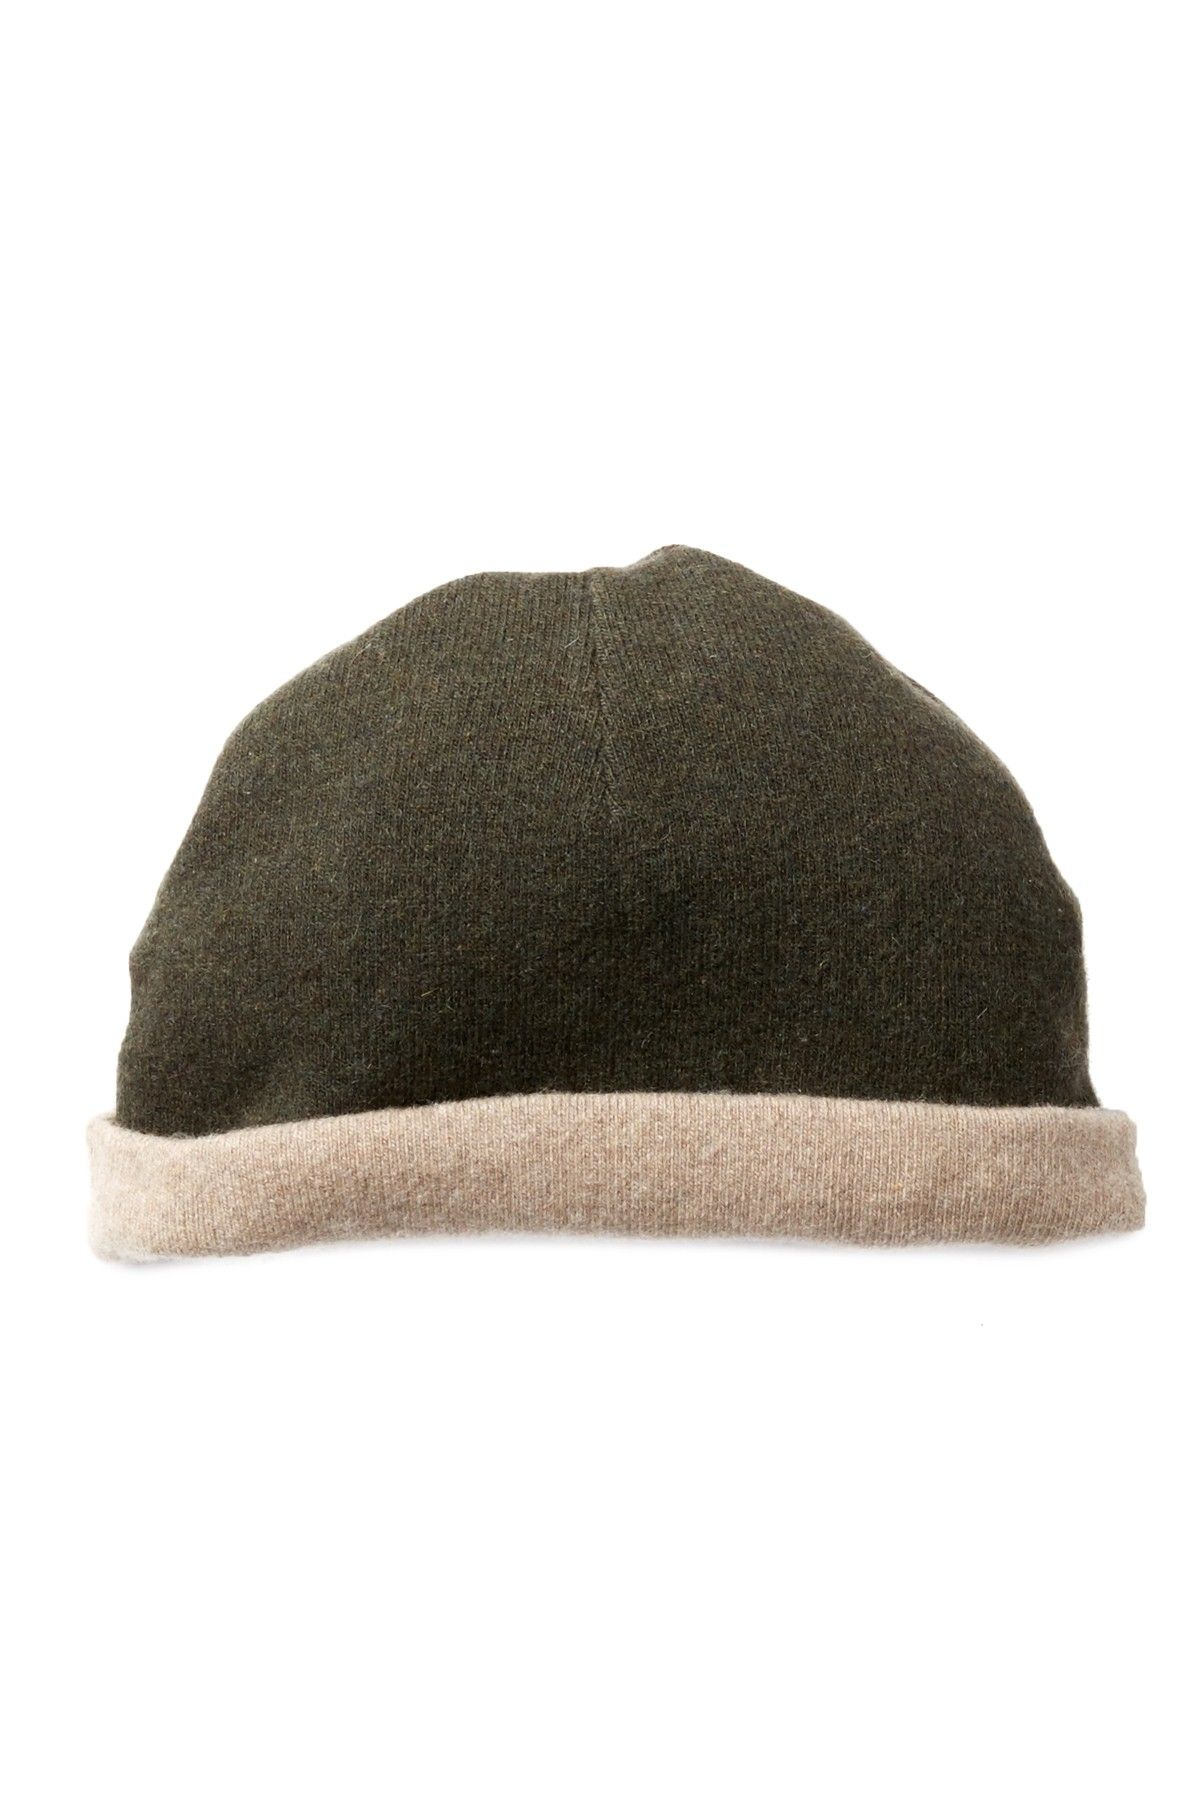 Nile Brown   Green Reversible Cashmere Beanie 98c7ea38a3b1